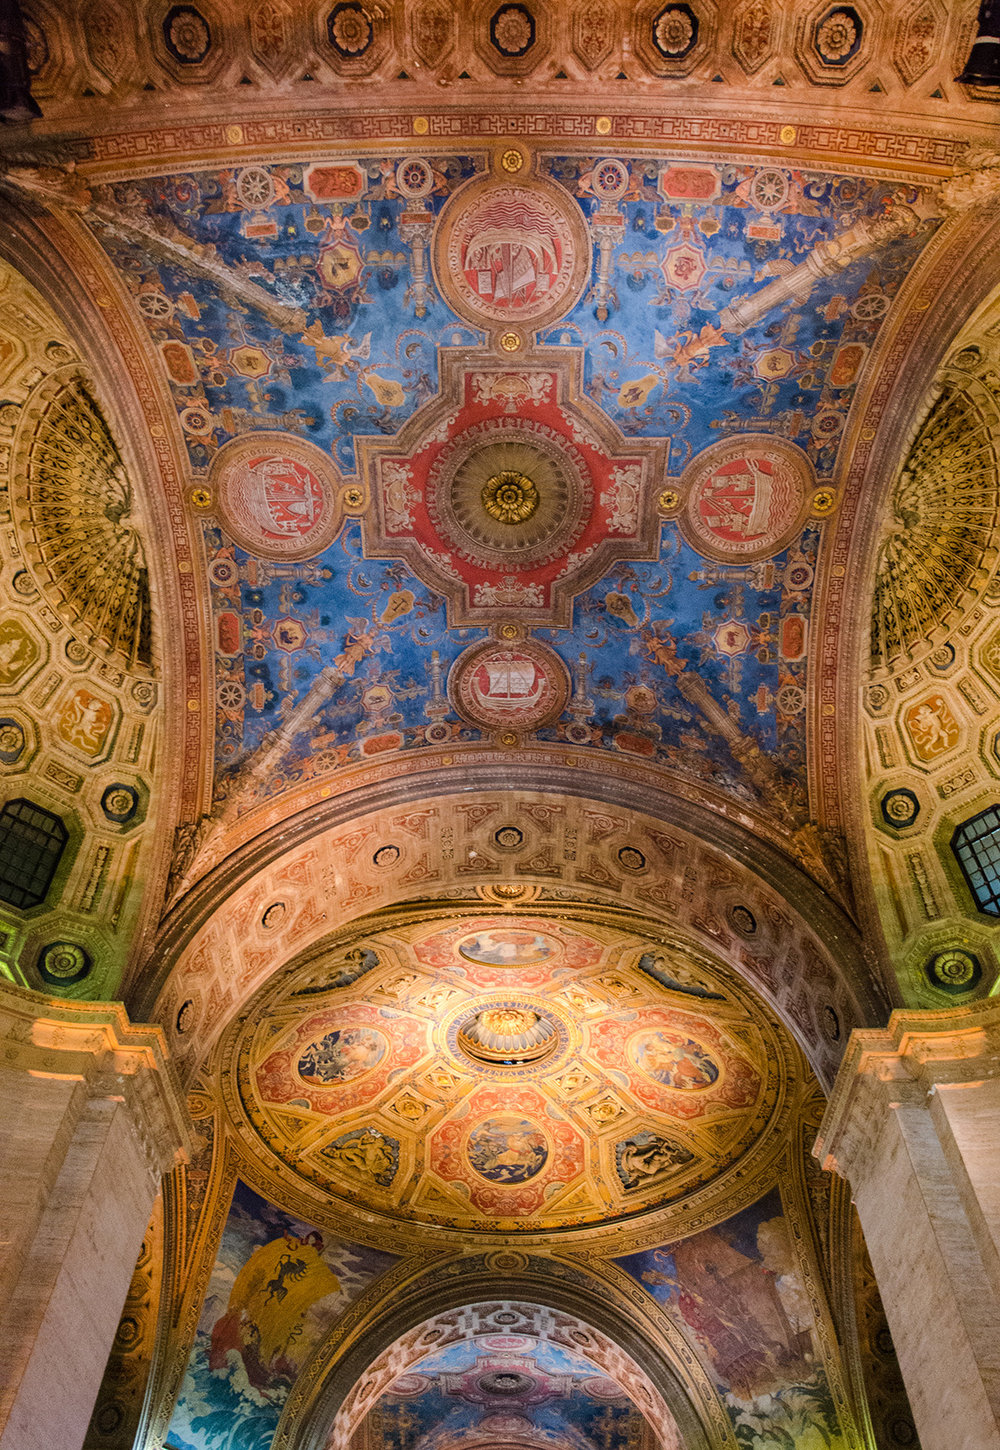 Beautiful ceiling of the Cunard Building in Lower Manhattan, NYC. Originally opened in 1921.